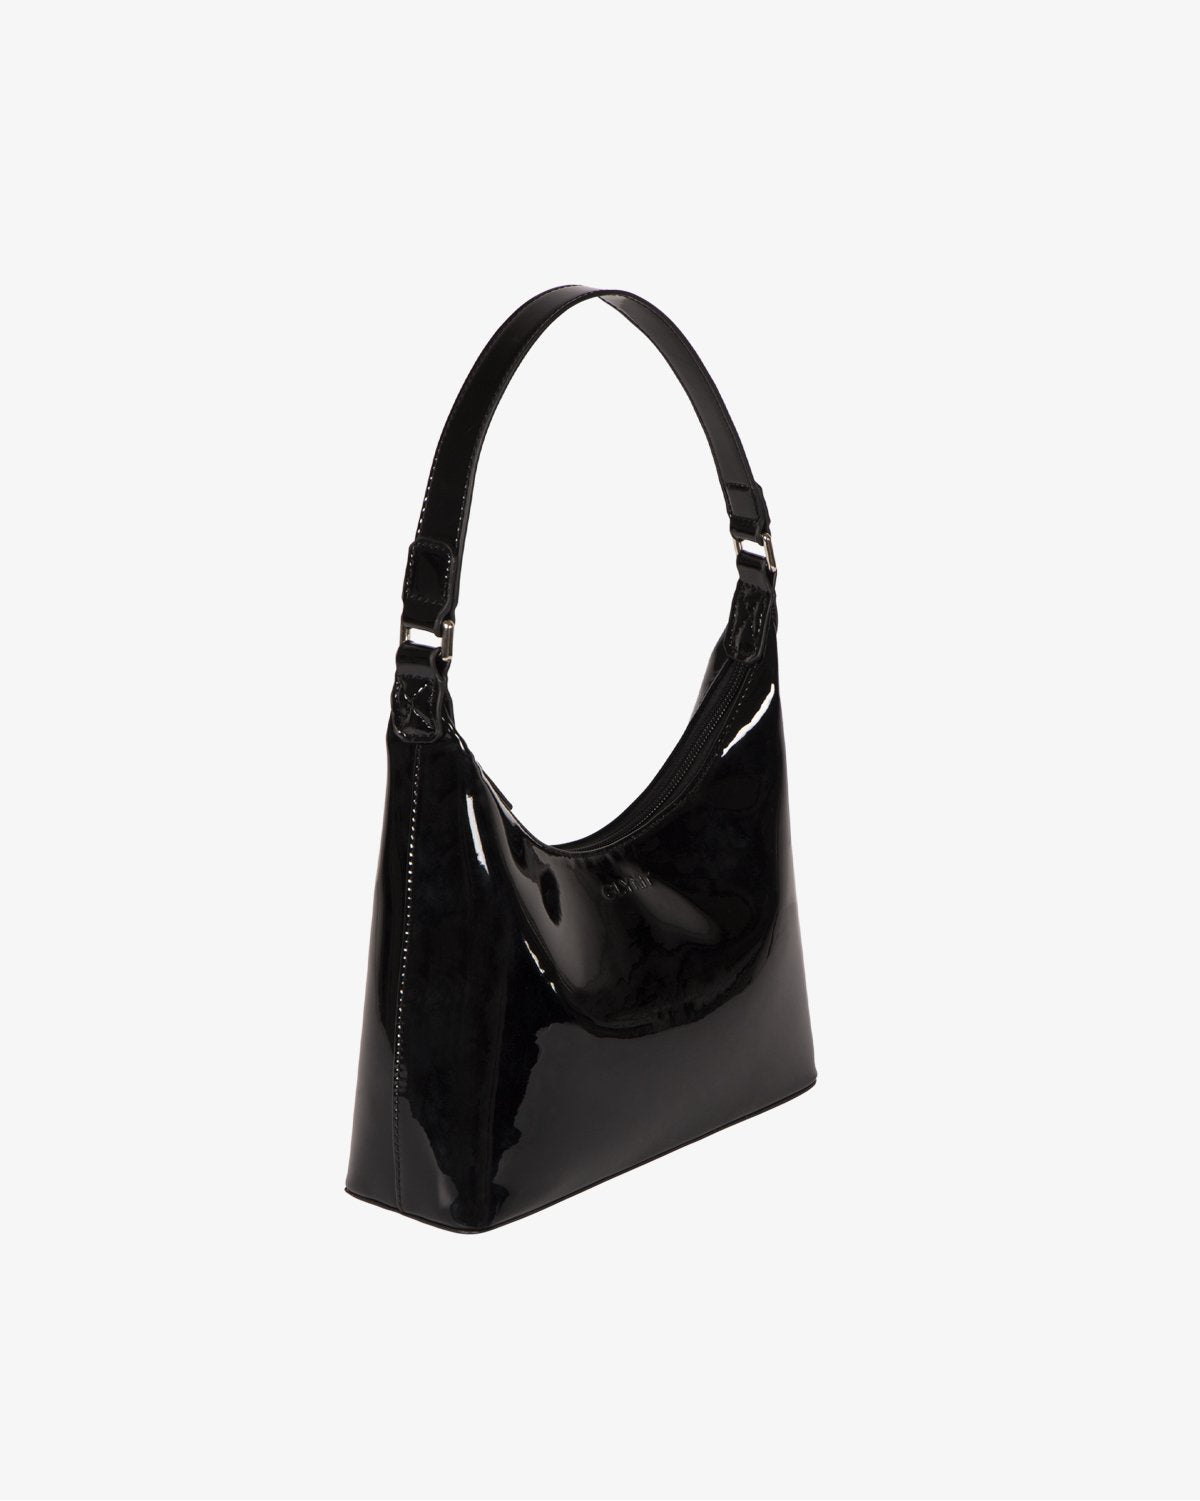 THE MOLLY BAG - DEEP BLACK